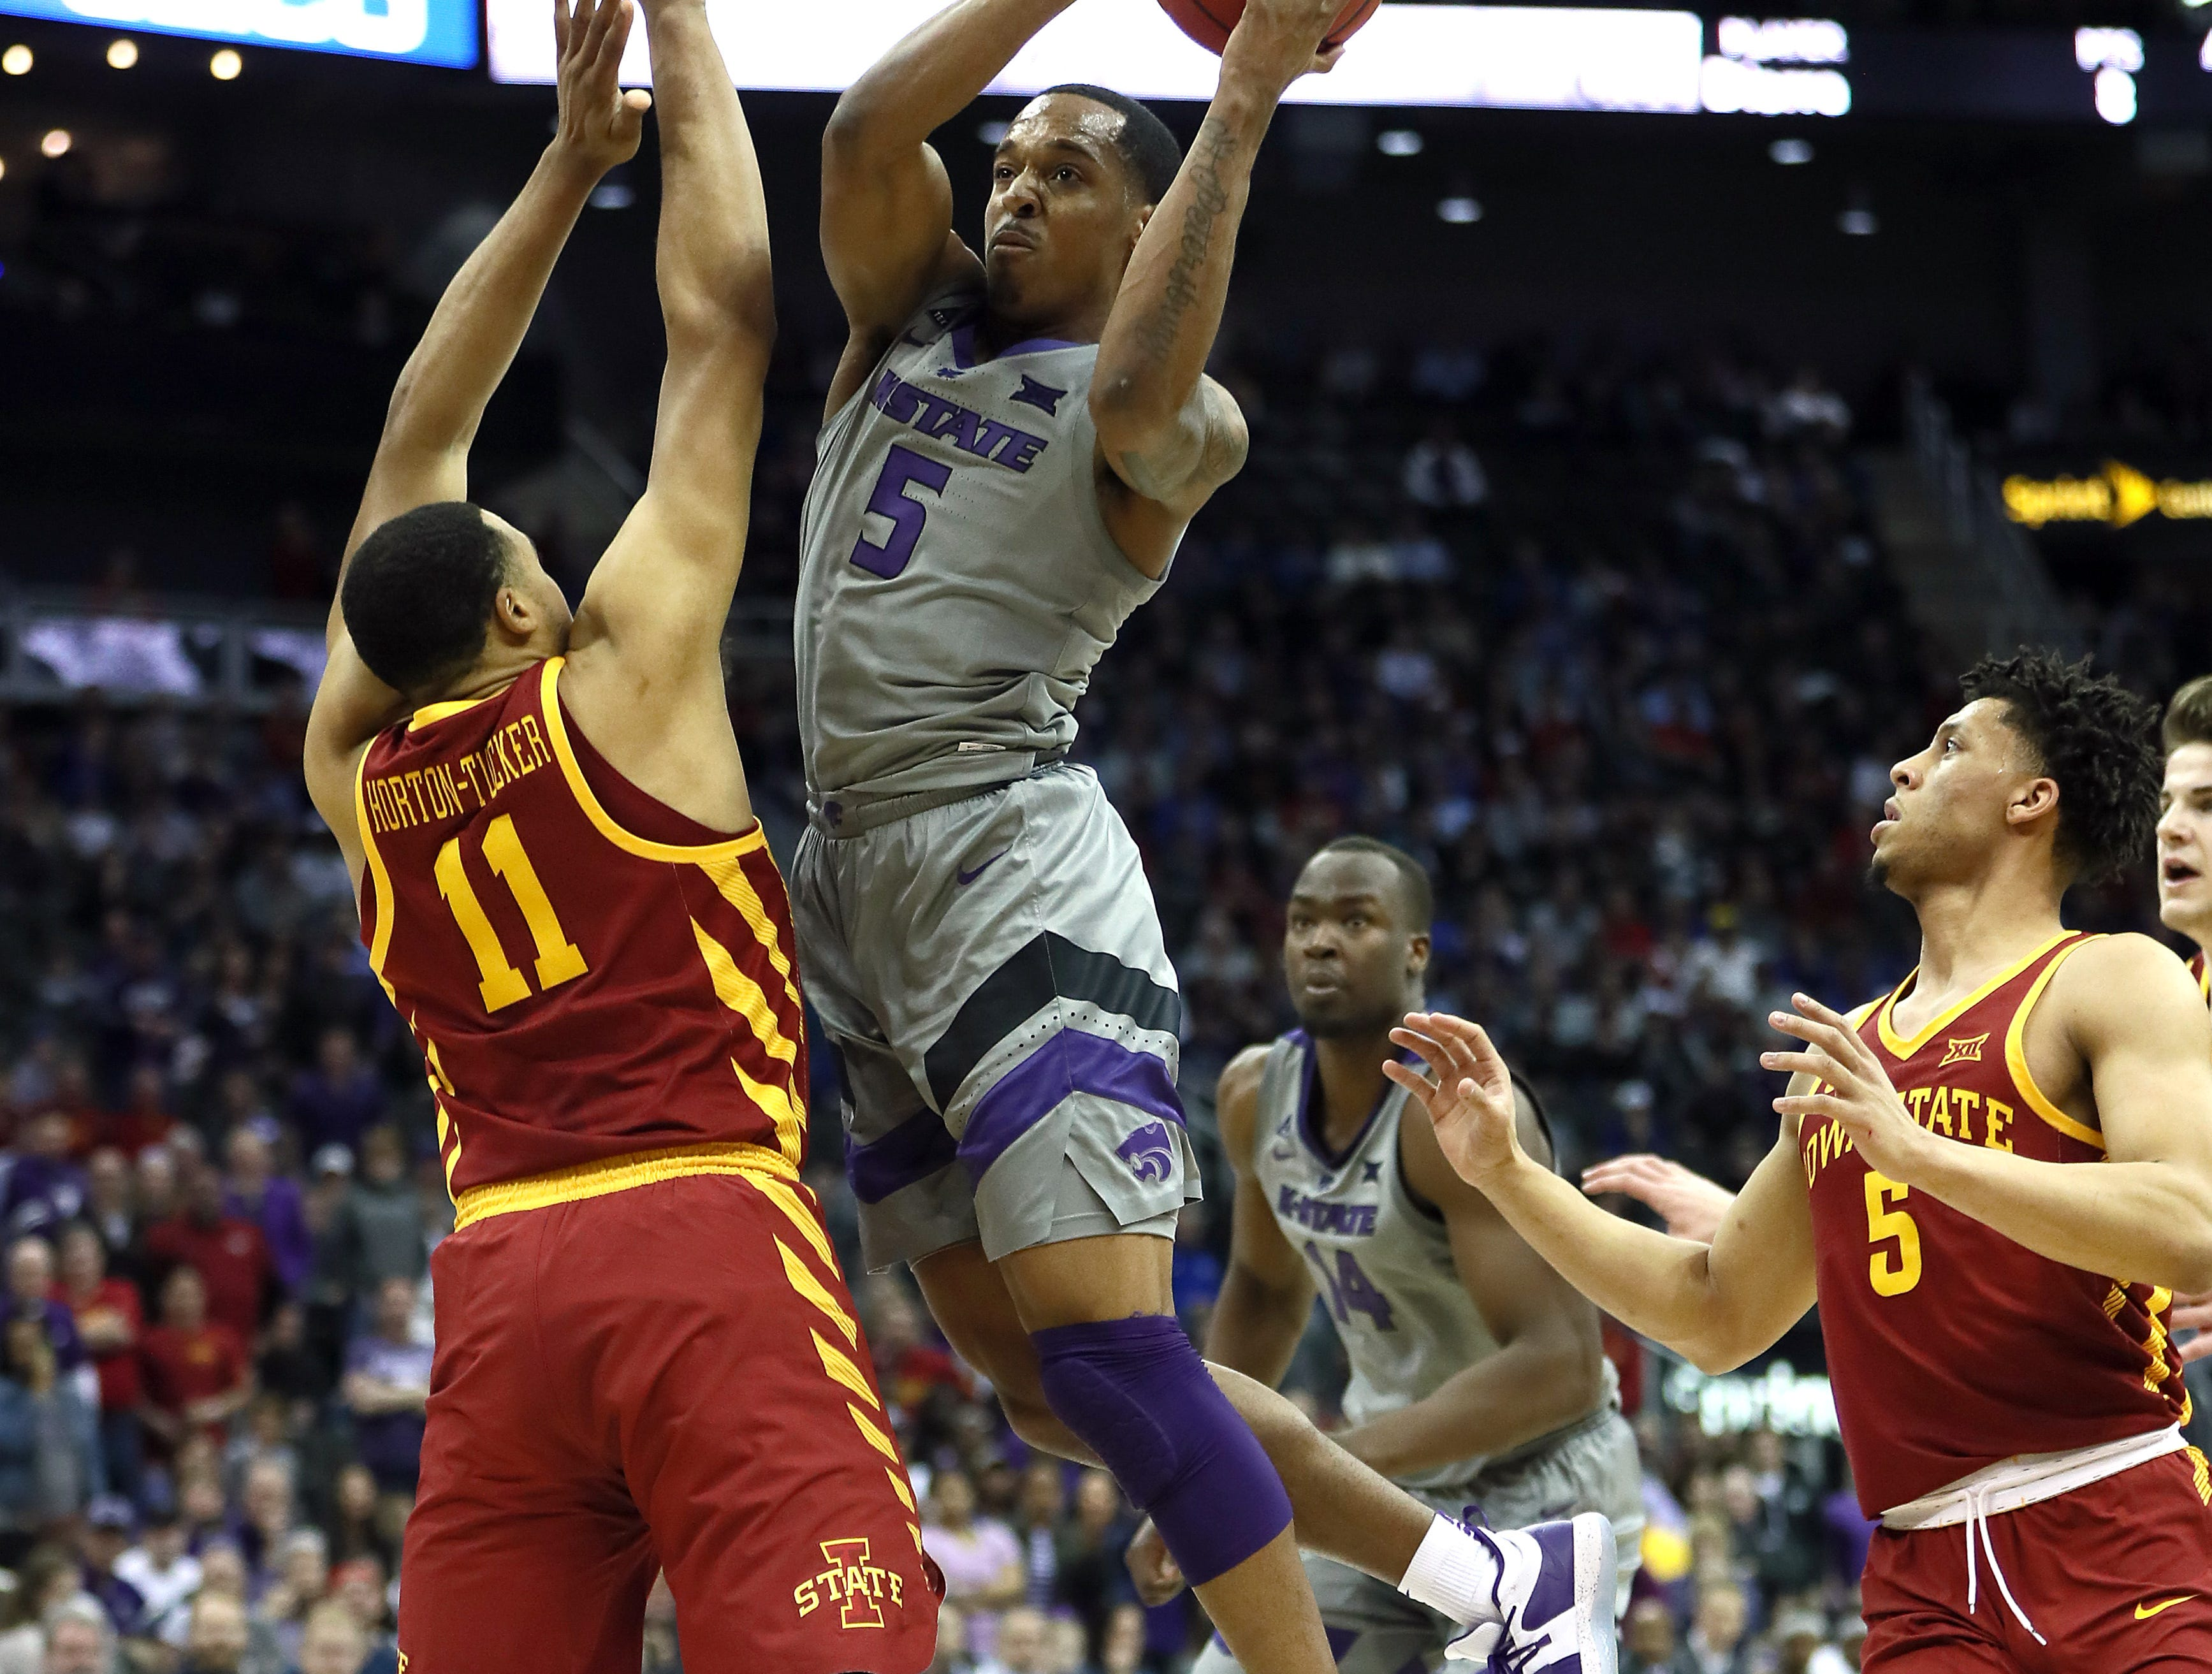 KANSAS CITY, MISSOURI - MARCH 15:  Barry Brown Jr. #5 of the Kansas State Wildcats drives toward the basket as Talen Horton-Tucker #11 of the Iowa State Cyclones defends during the semifinal game of the Big 12 Basketball Tournament at Sprint Center on March 15, 2019 in Kansas City, Missouri. (Photo by Jamie Squire/Getty Images)